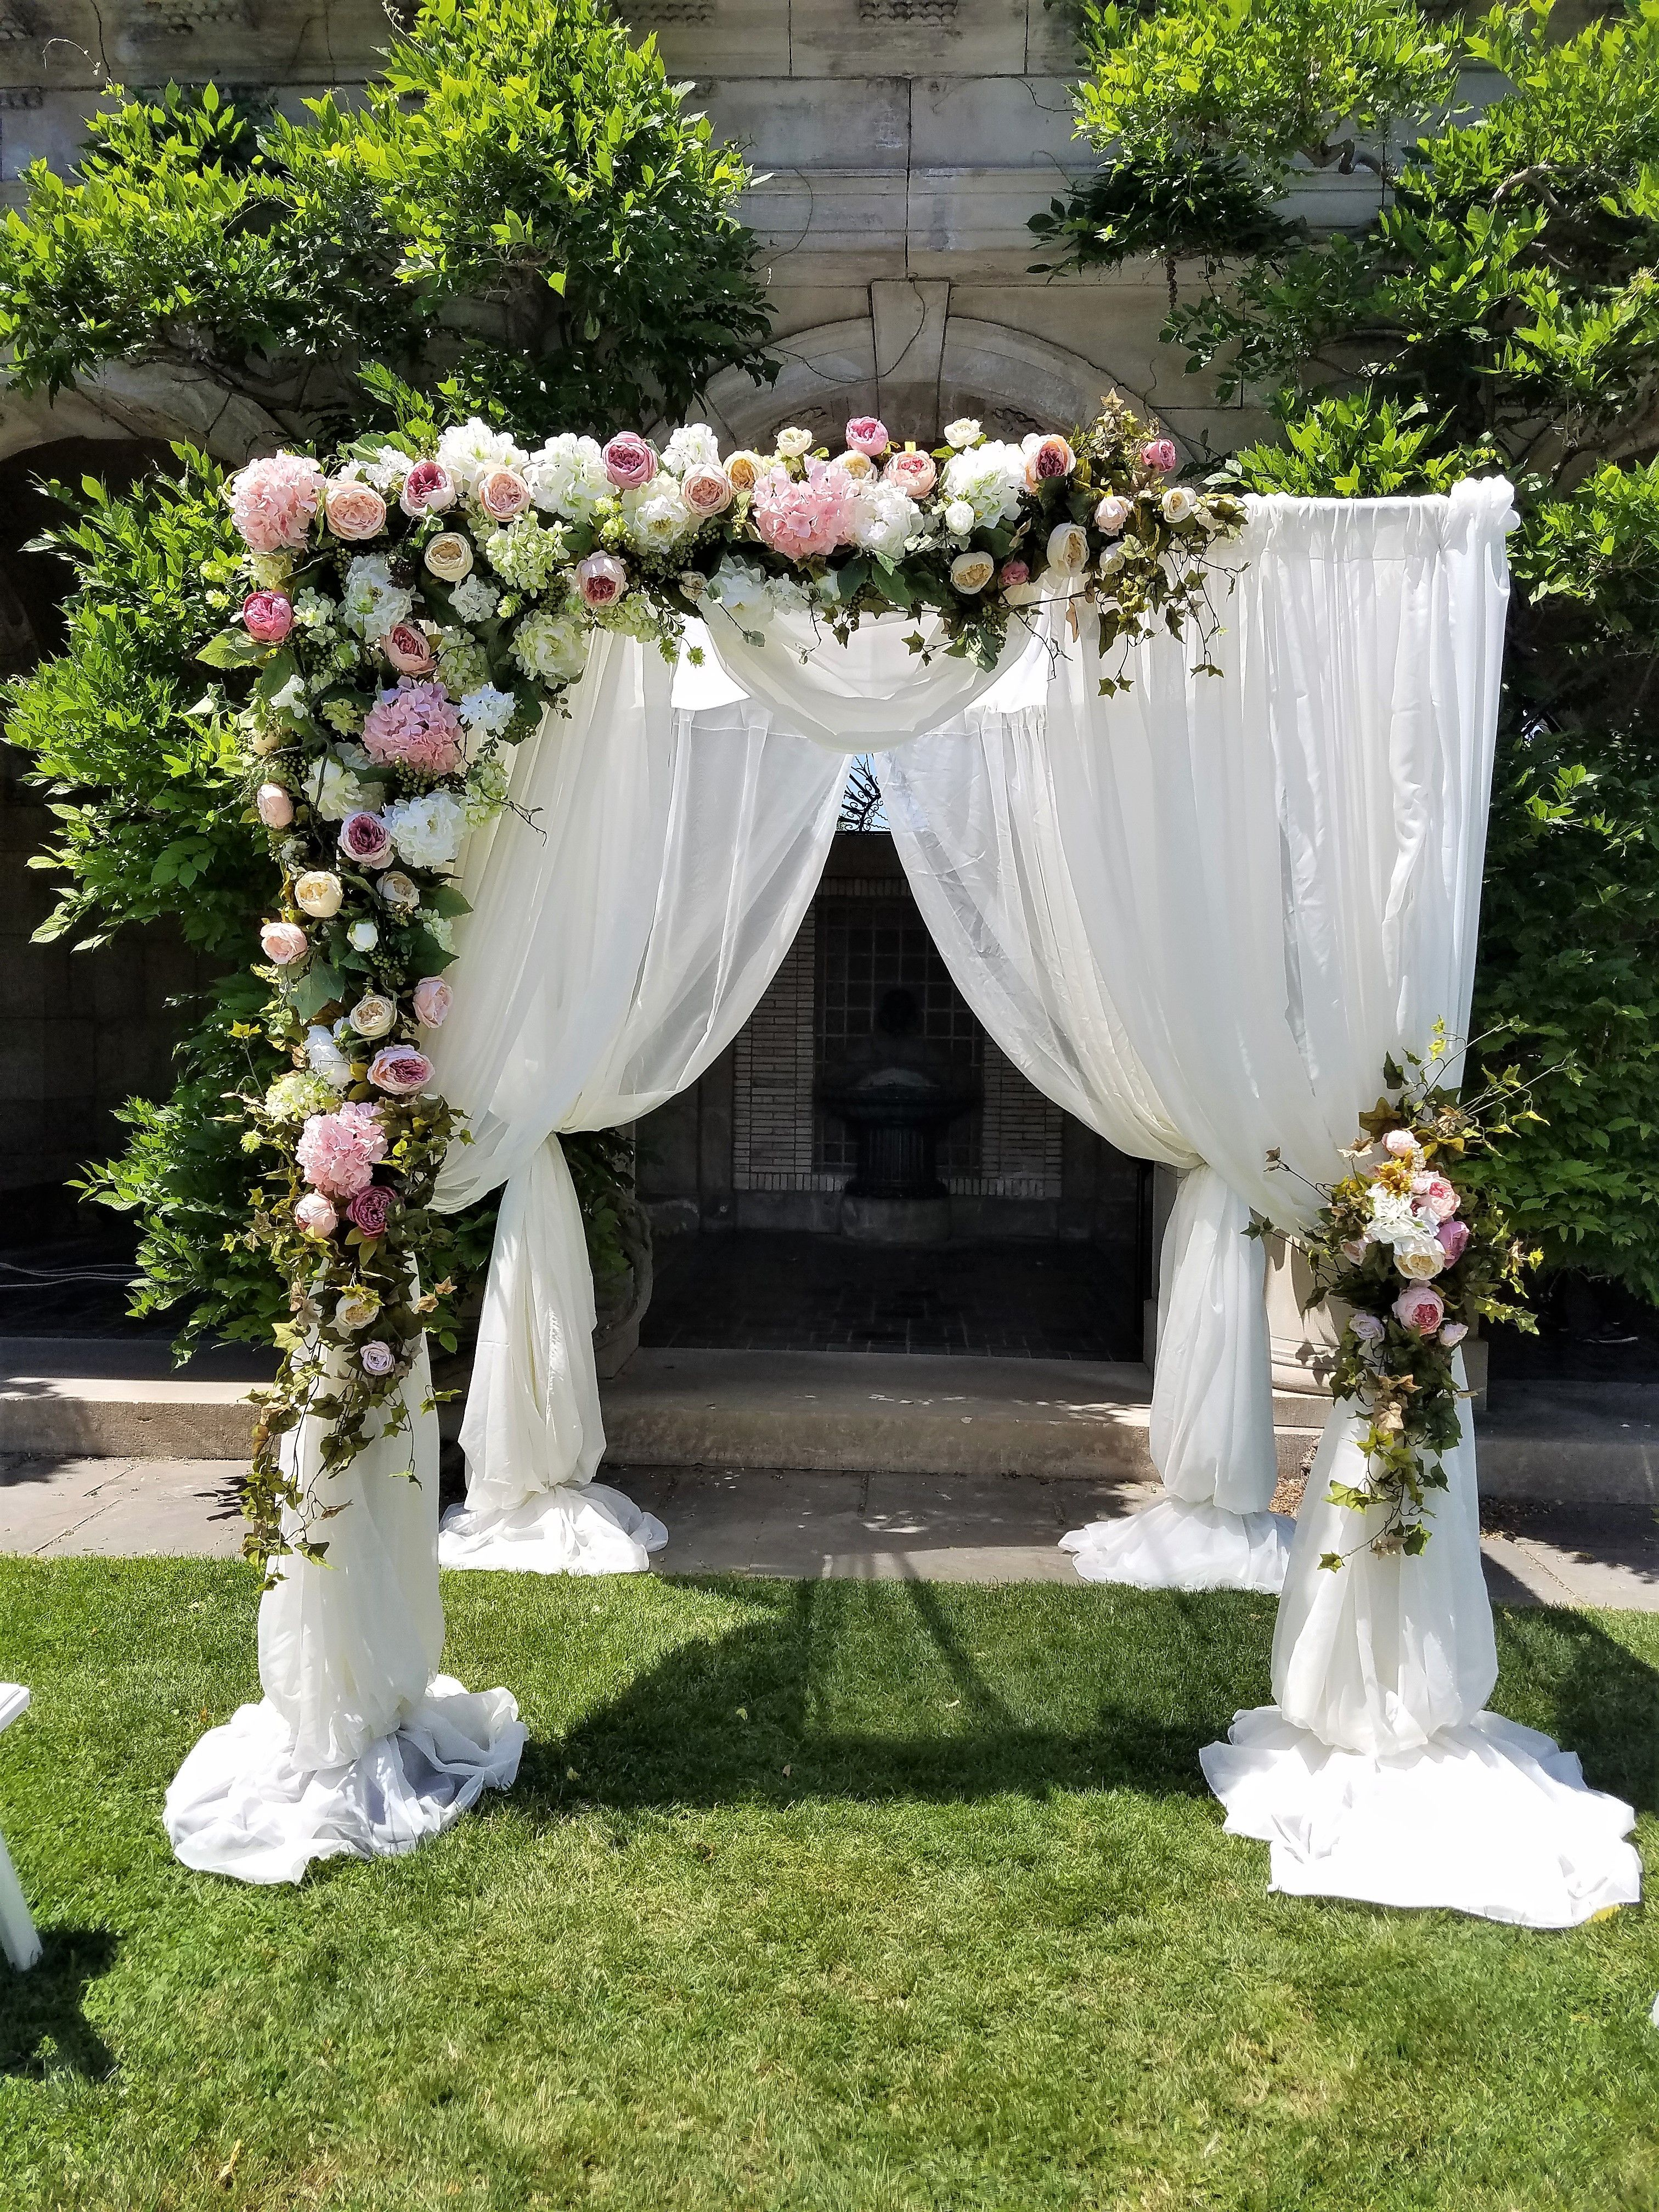 Wedding decorations arch  Shades of blushes pinks and ivory for this ChuppahArch wedding